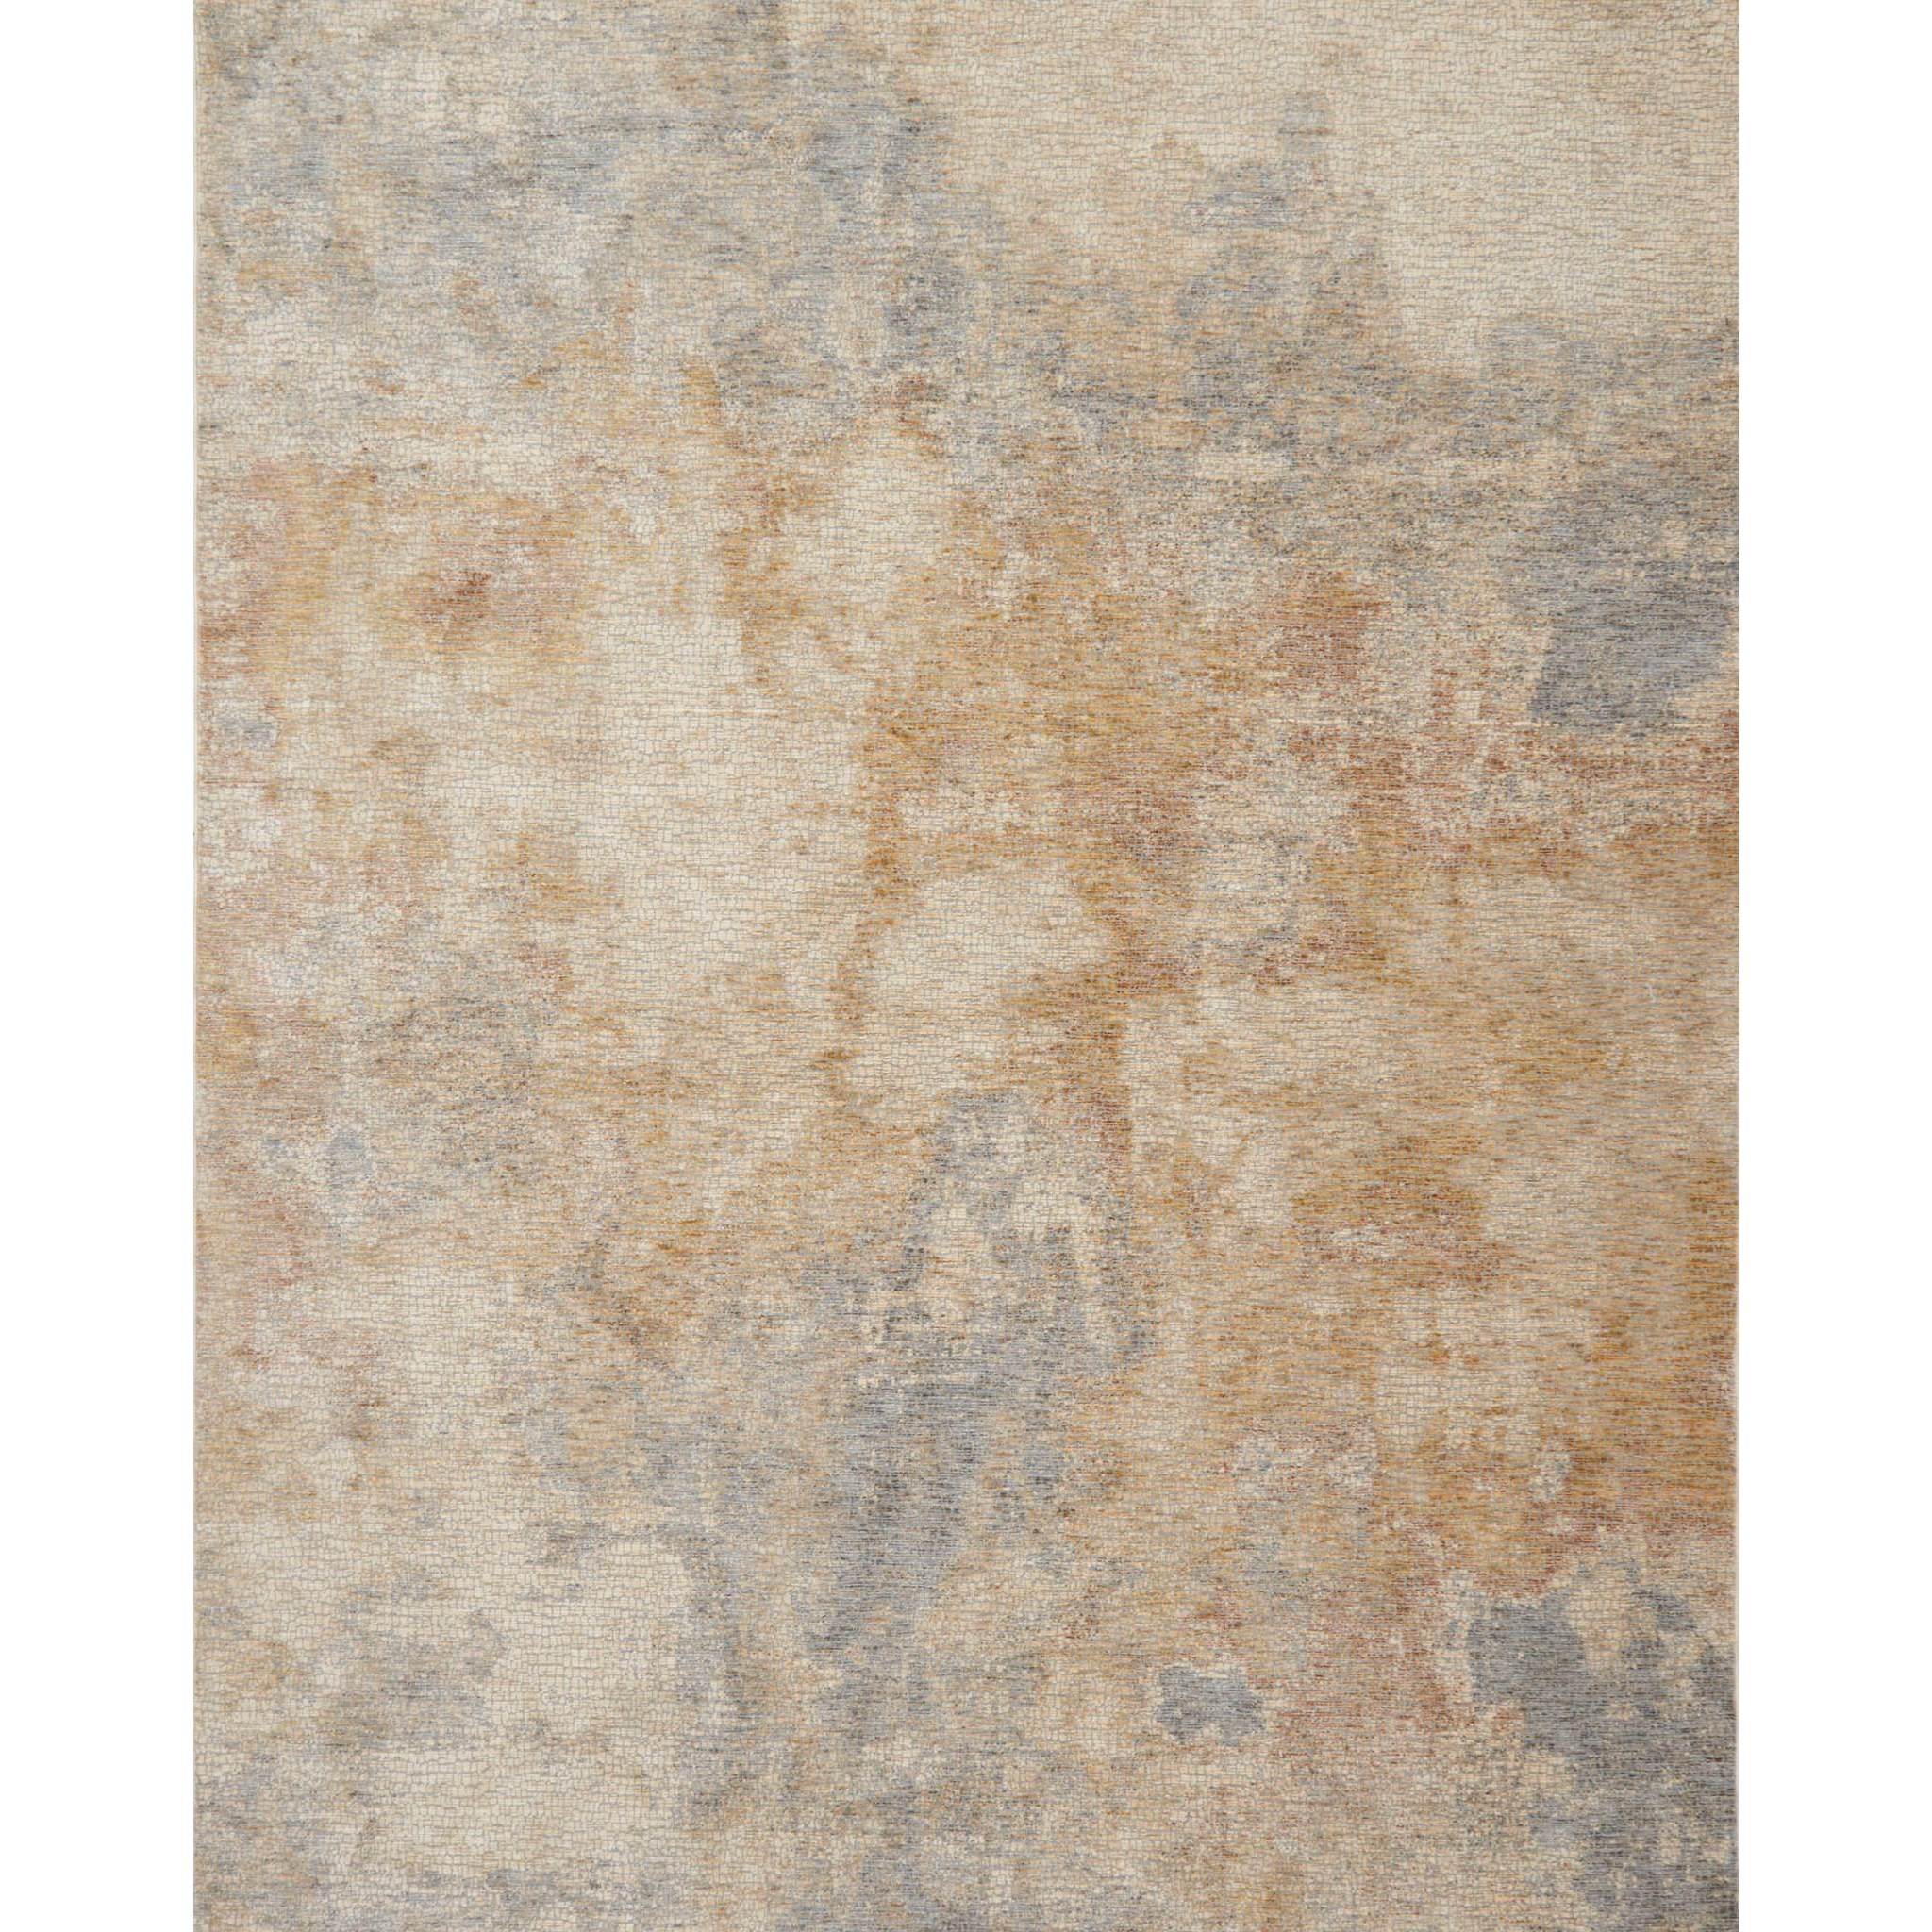 "Porcia 7'-10"" X 10' Area Rug by Loloi Rugs at Sprintz Furniture"